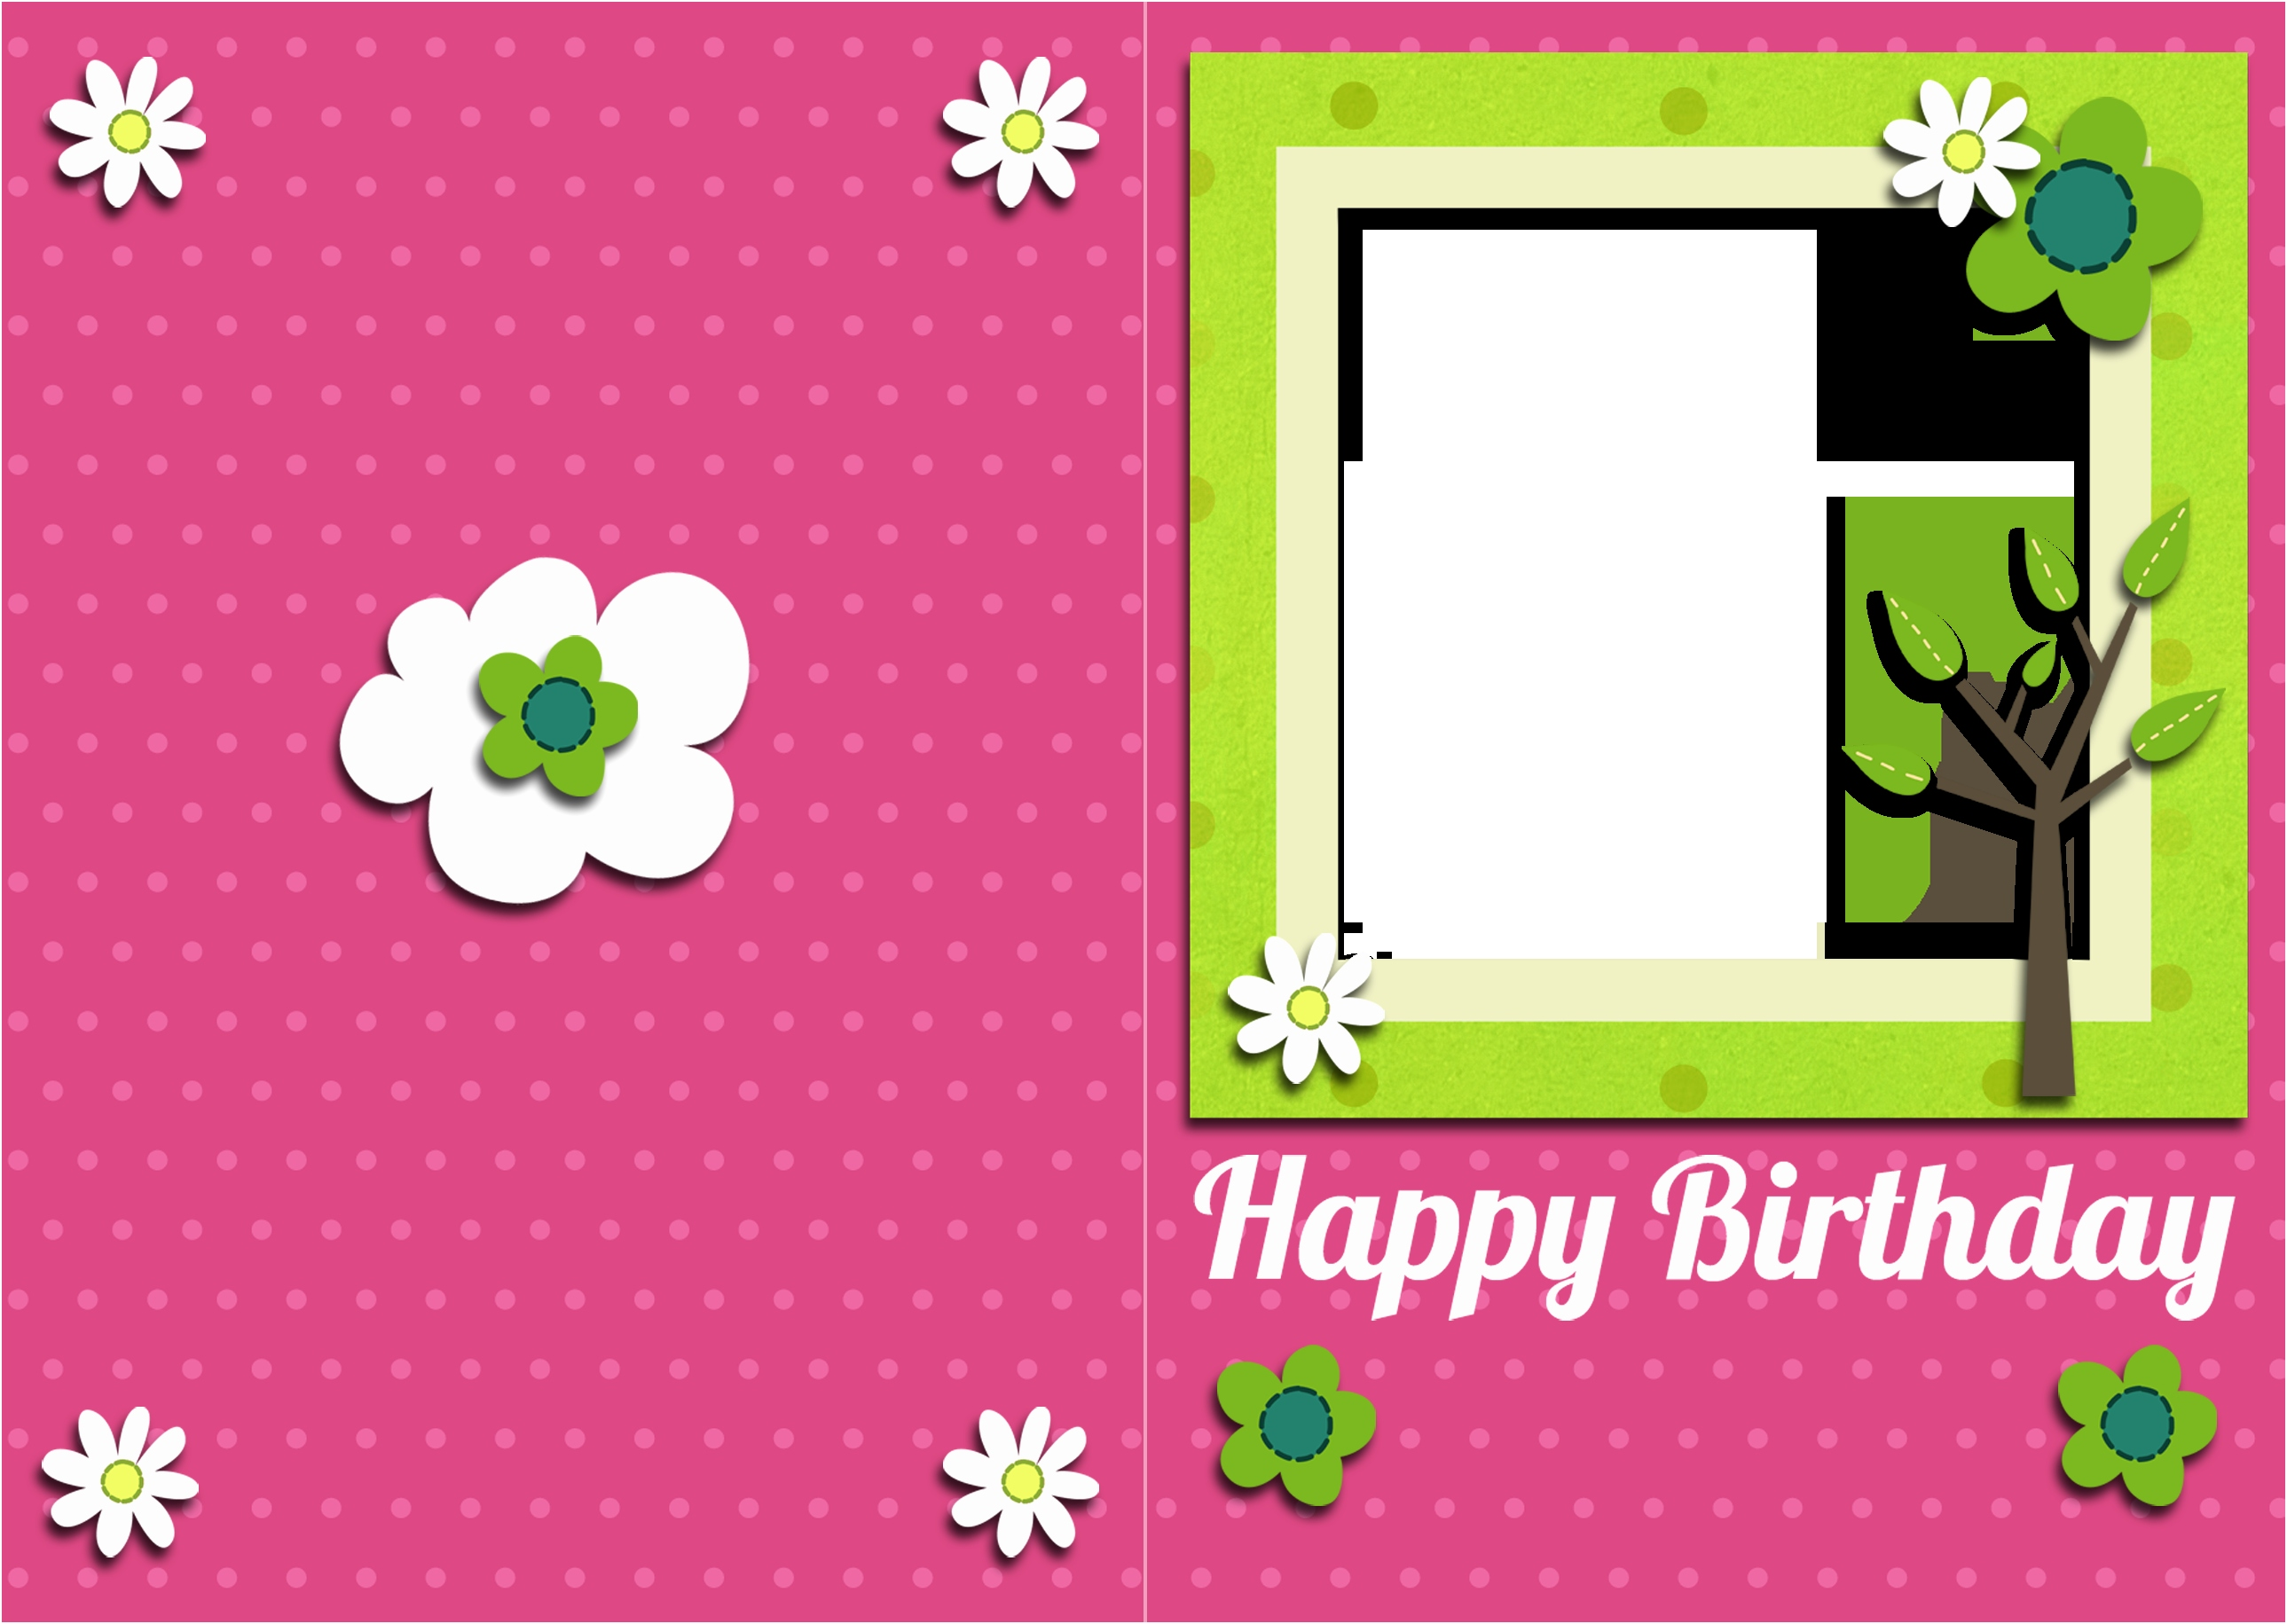 birthday card inserts free ; free%2520printable%2520birthday%2520card%2520inserts%2520;%2520birthday-card-with-photo-insert-free-inspirational-free-to-print-free-of-birthday-card-with-photo-insert-free